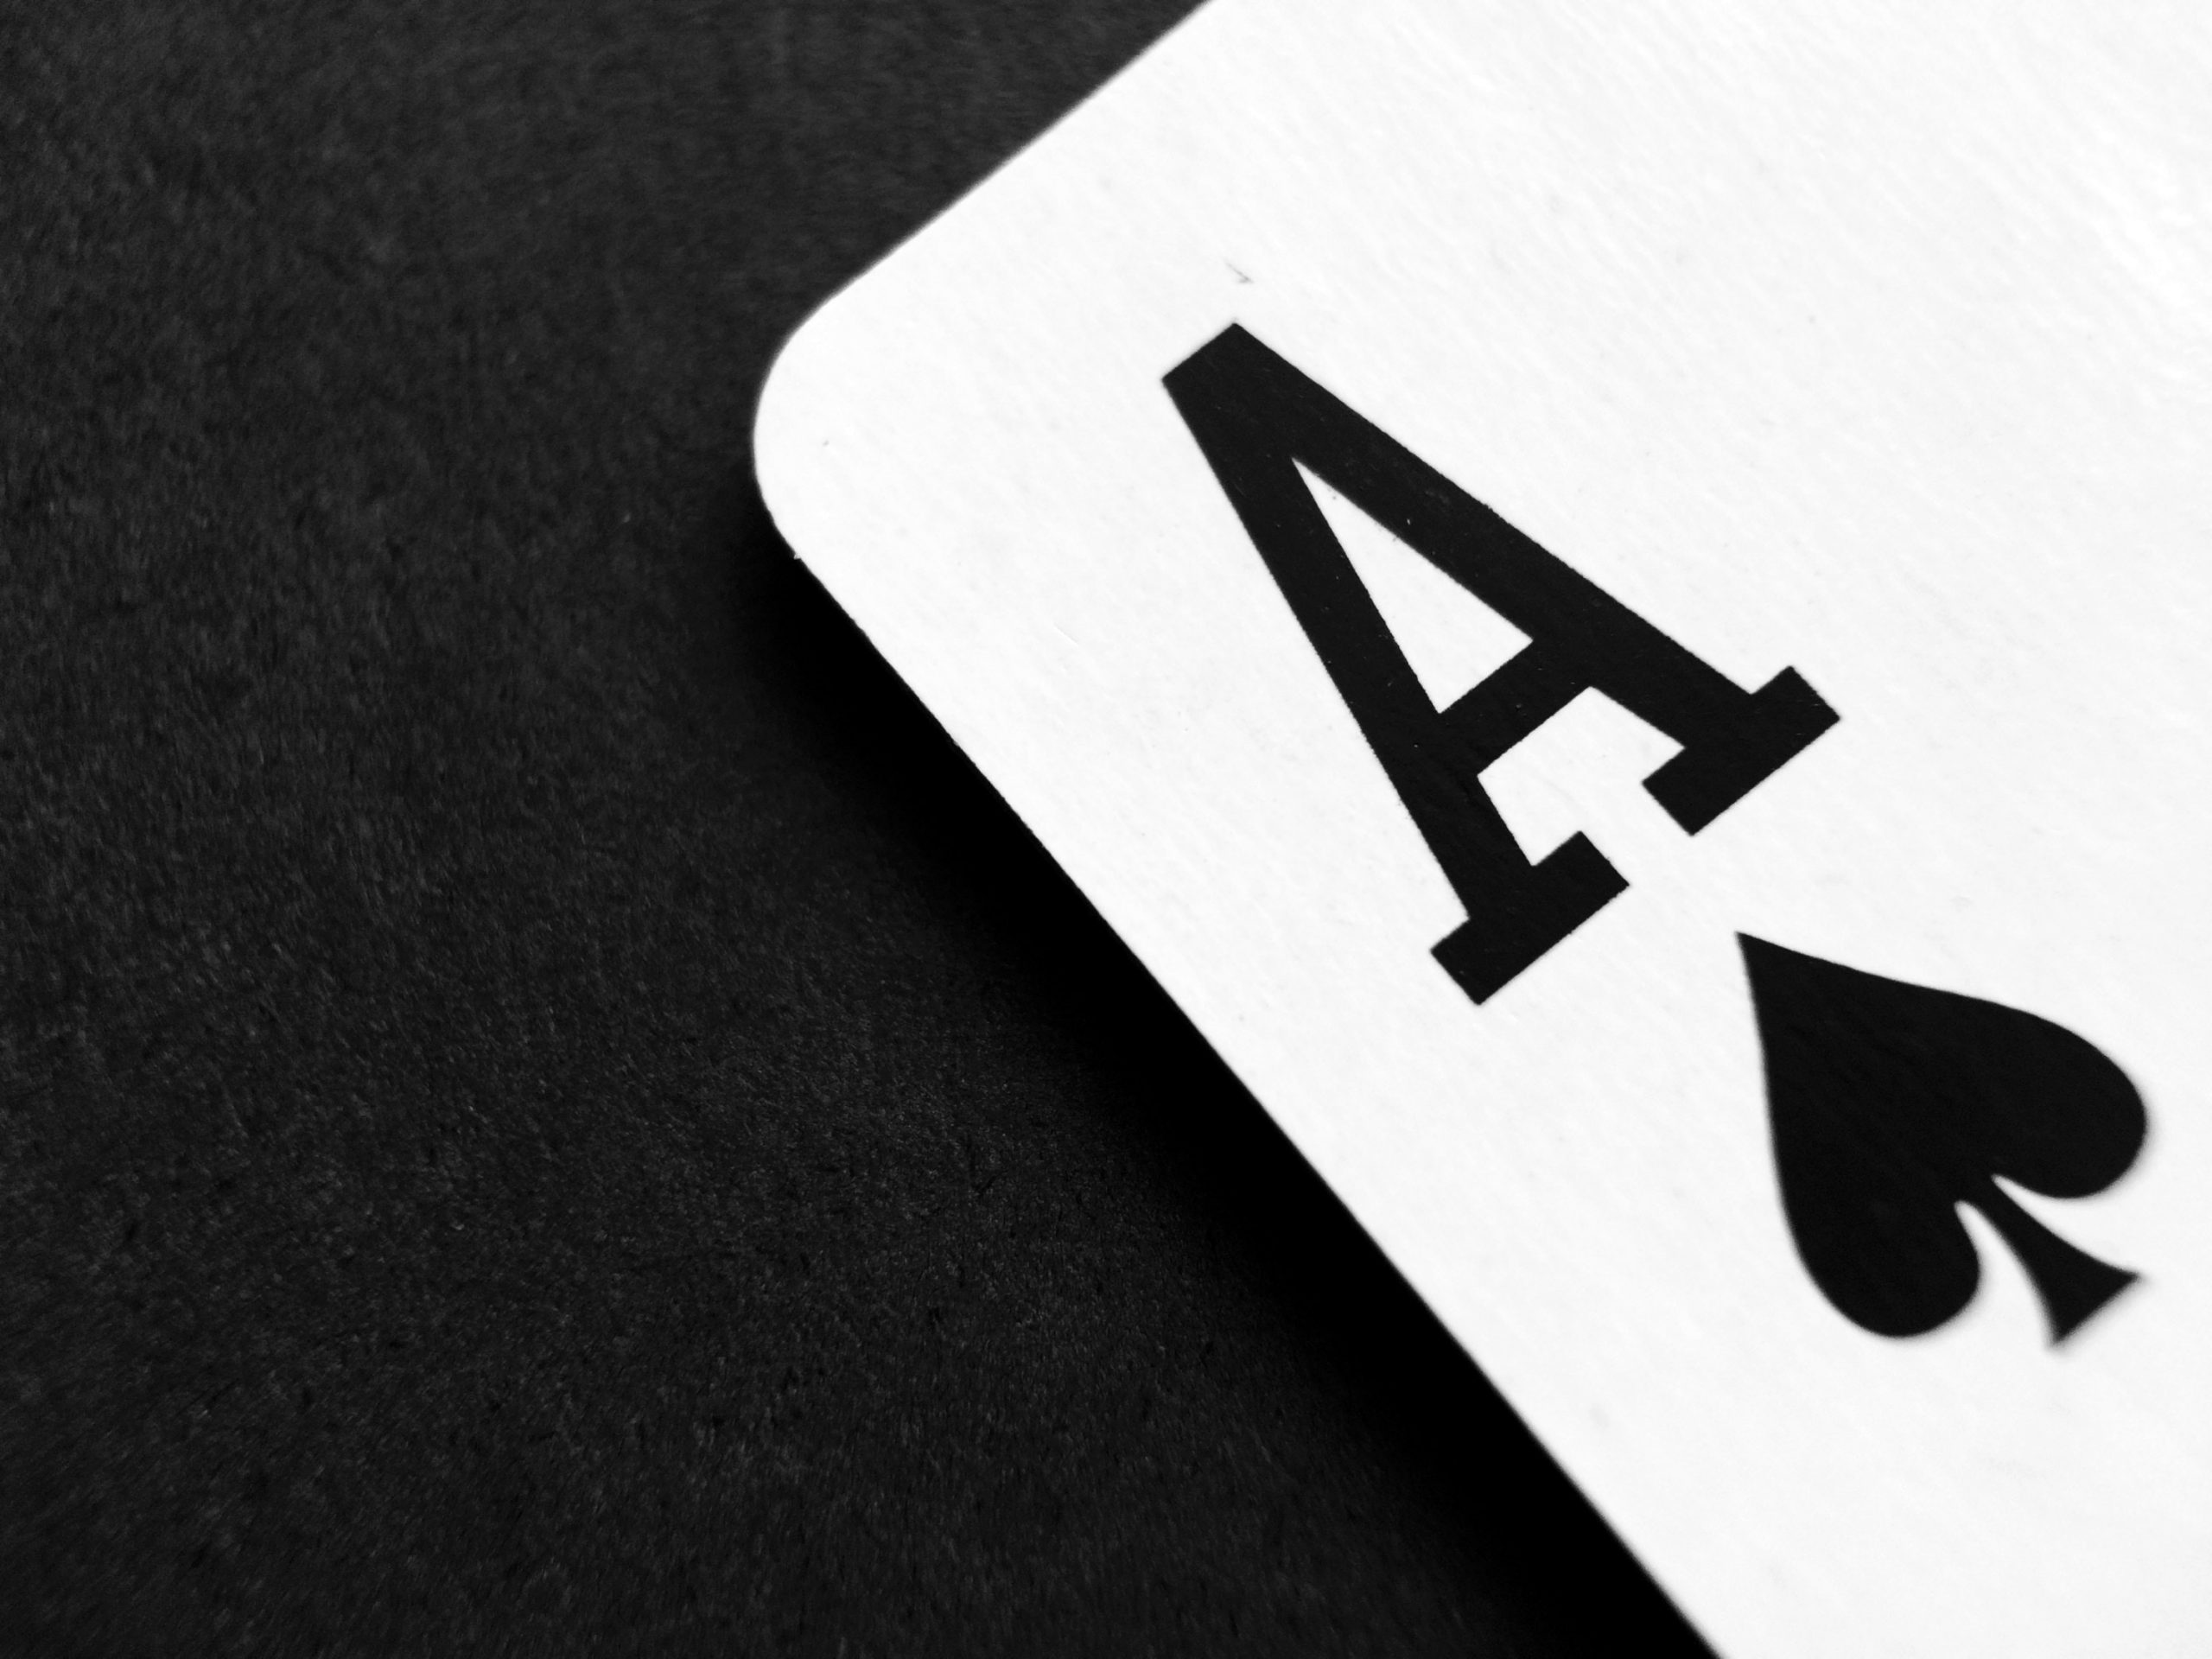 Exactly How To Make Even More Casino By Doing Much Less